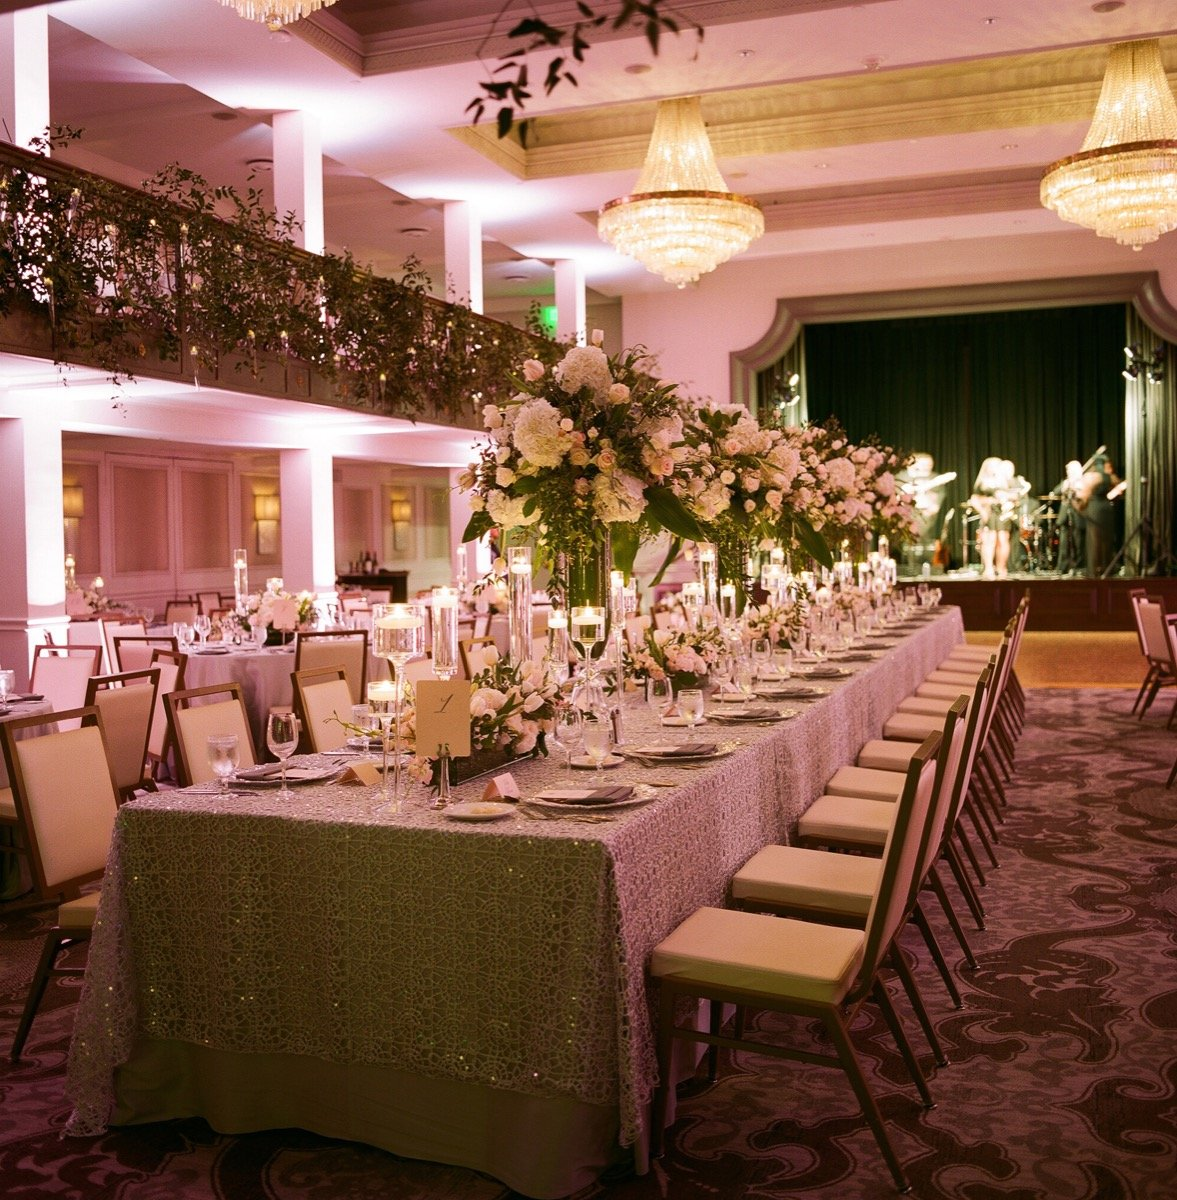 Alamo Plants & Petals adorned the St. Anthony Hotel's Anacacho Room with glorious flowers throuhout.